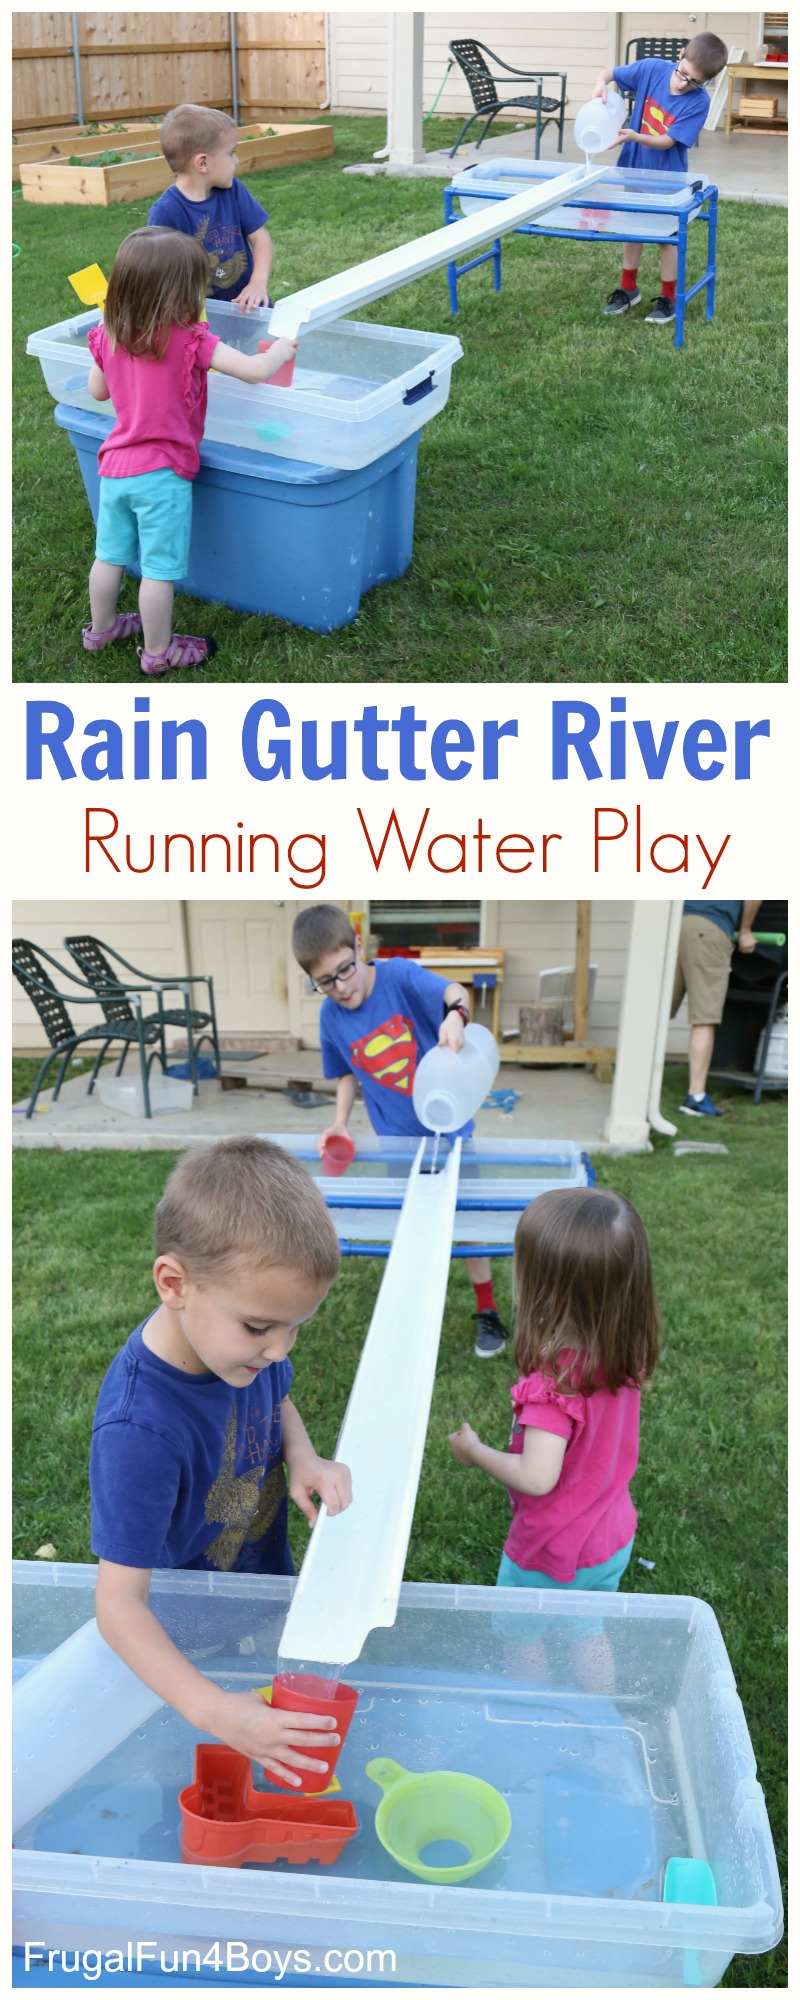 Build a Rain Gutter River - Water Play Activity for Kids